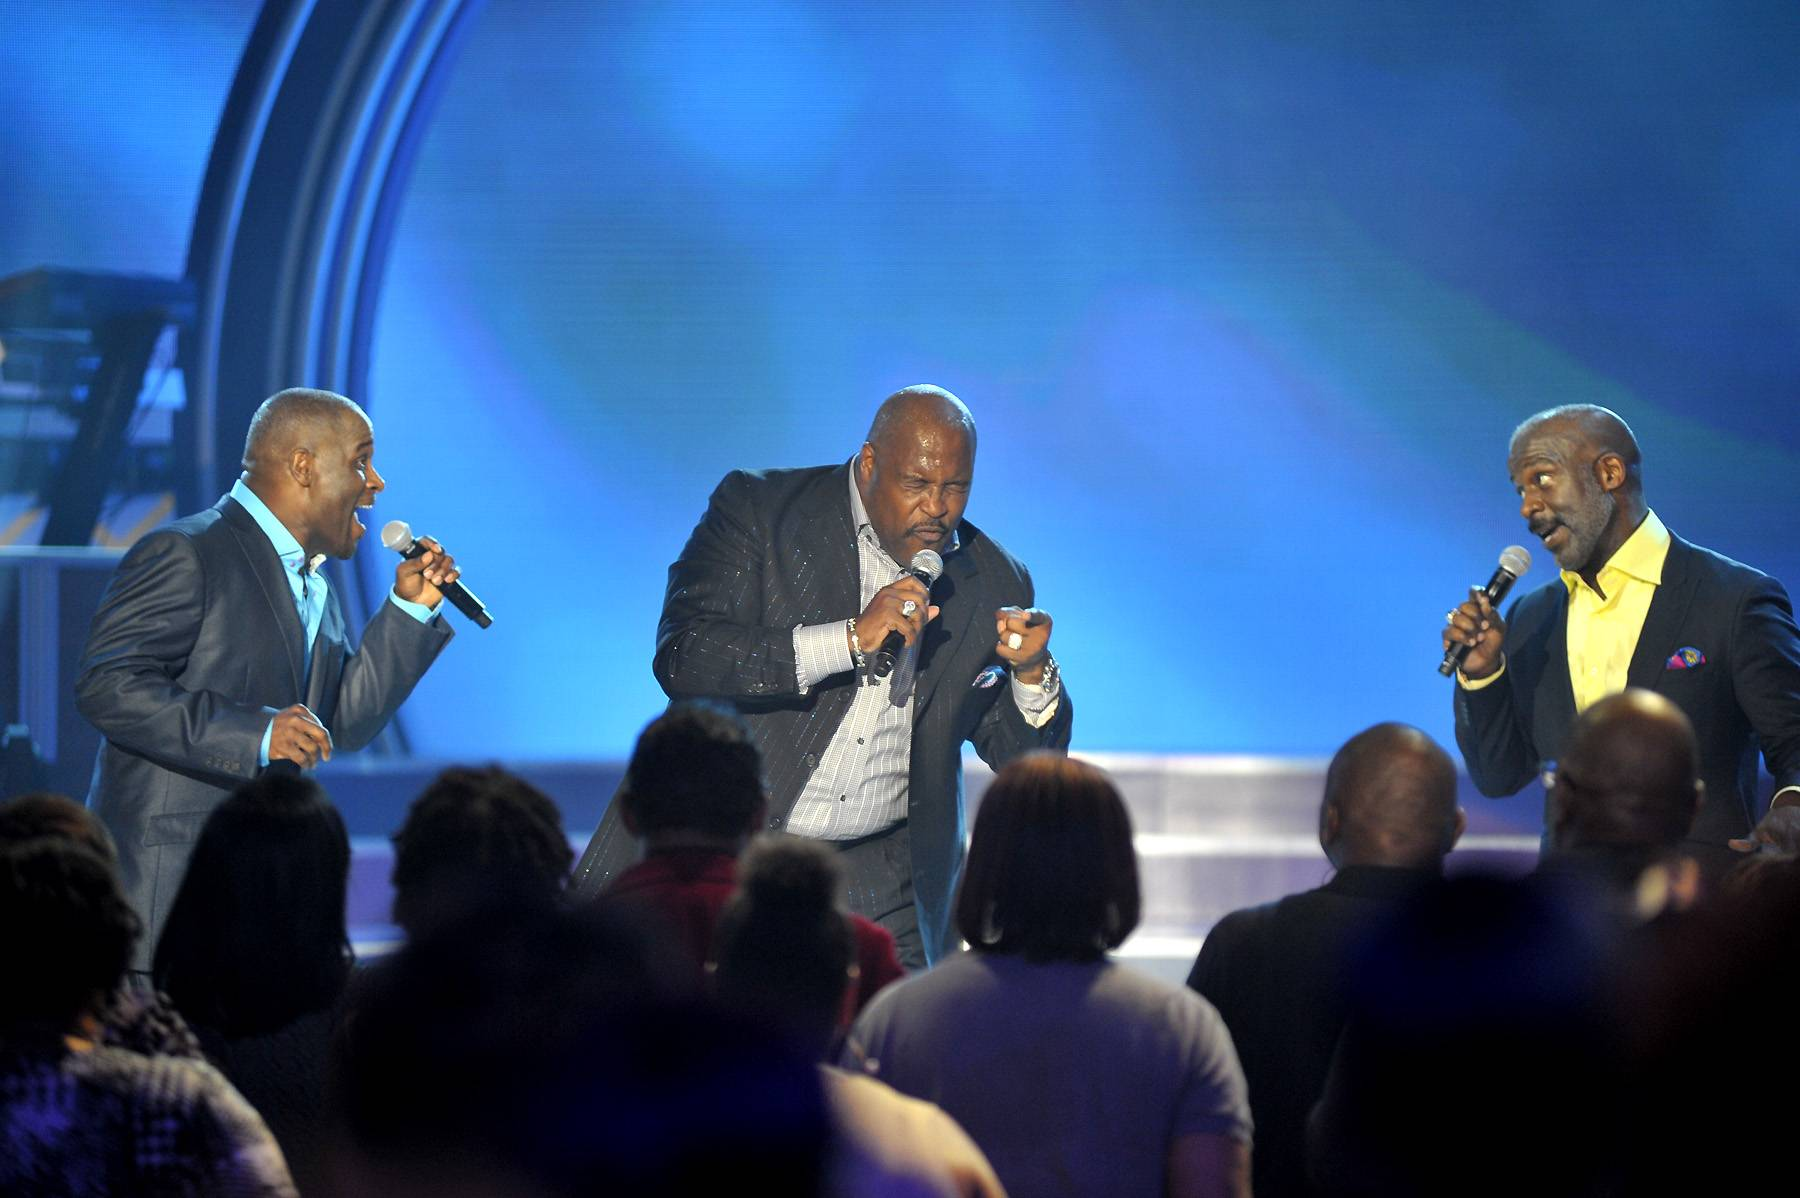 3WB (Three Winans Brothers) - (Photo: Kris Connor/Getty Images for BET Networks)